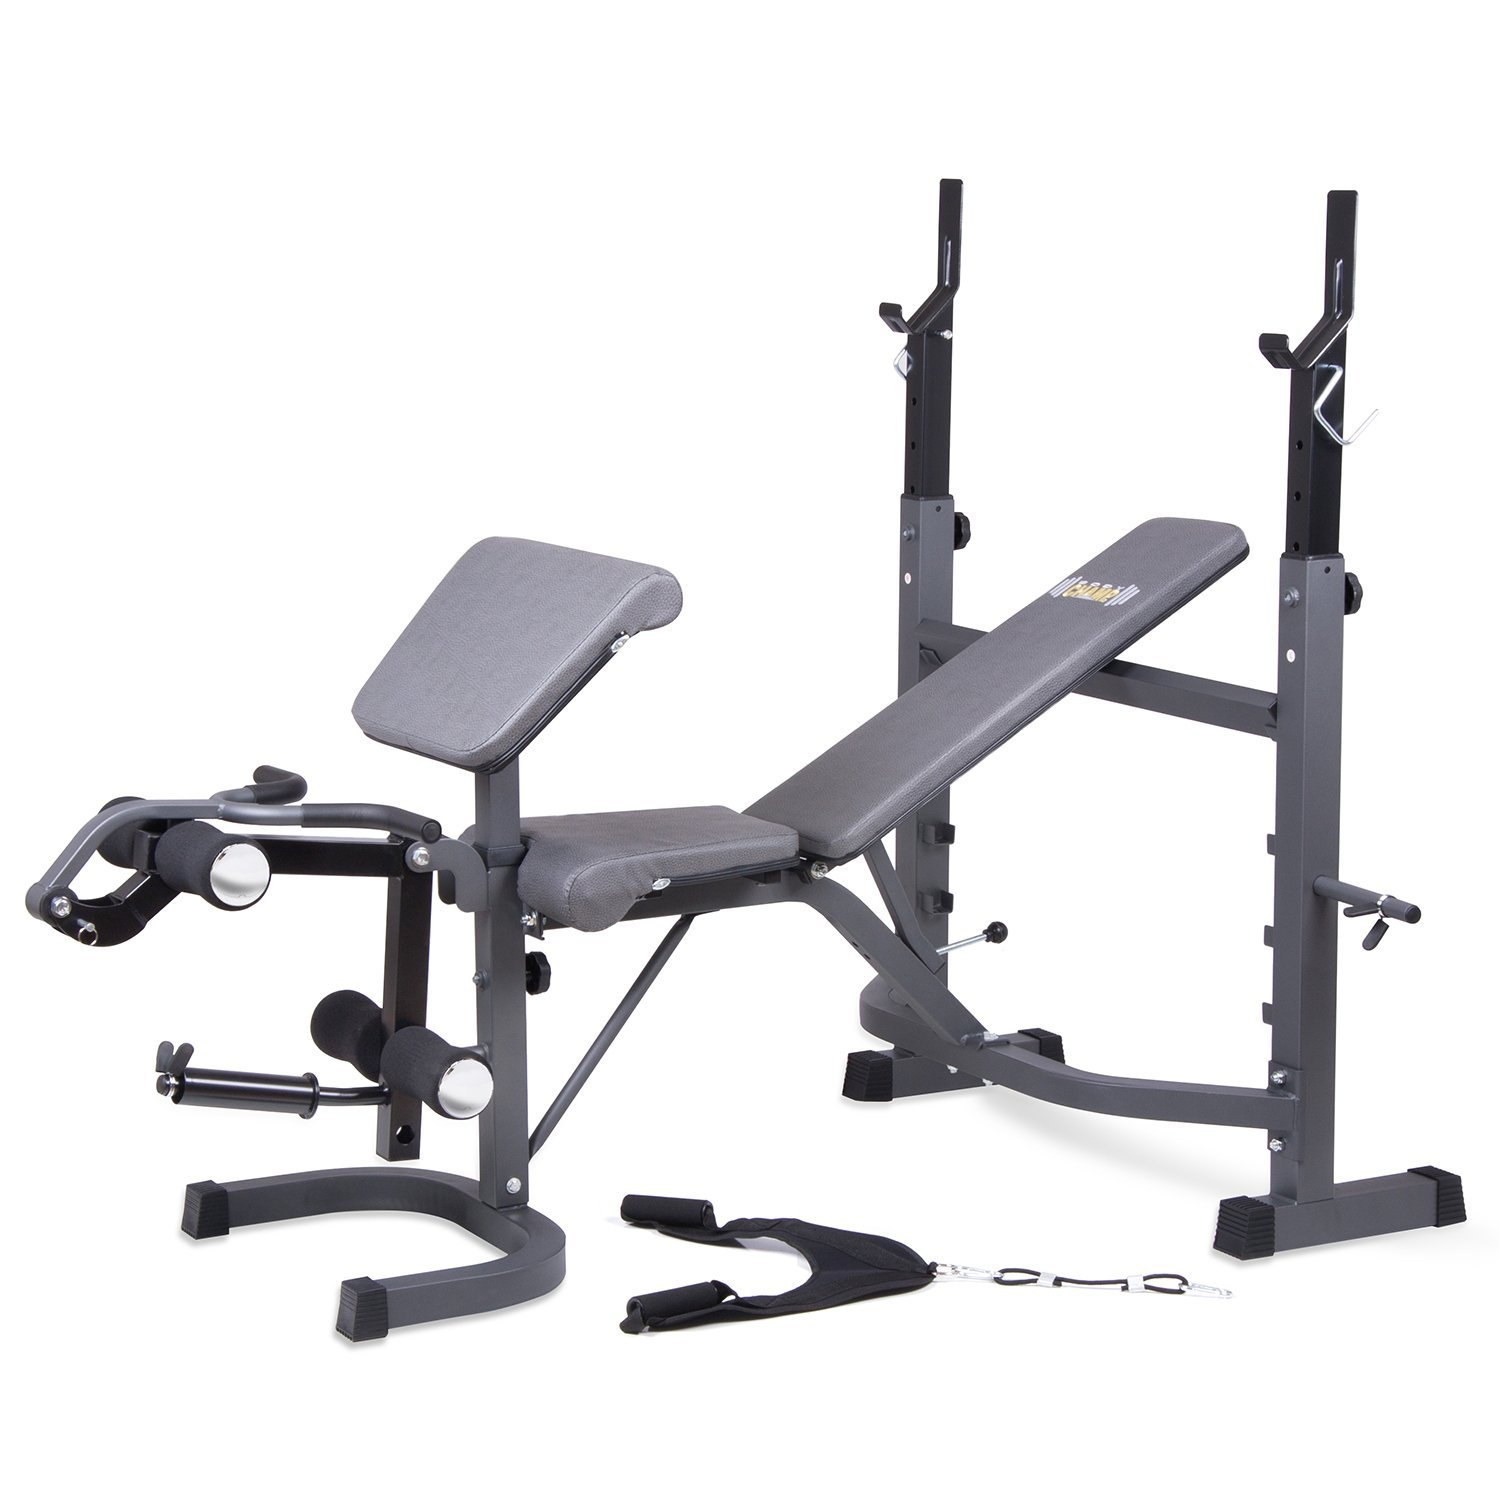 gym height mid ip weight width bench benches ancheer com adjustable fitness walmart olympic professional home arms